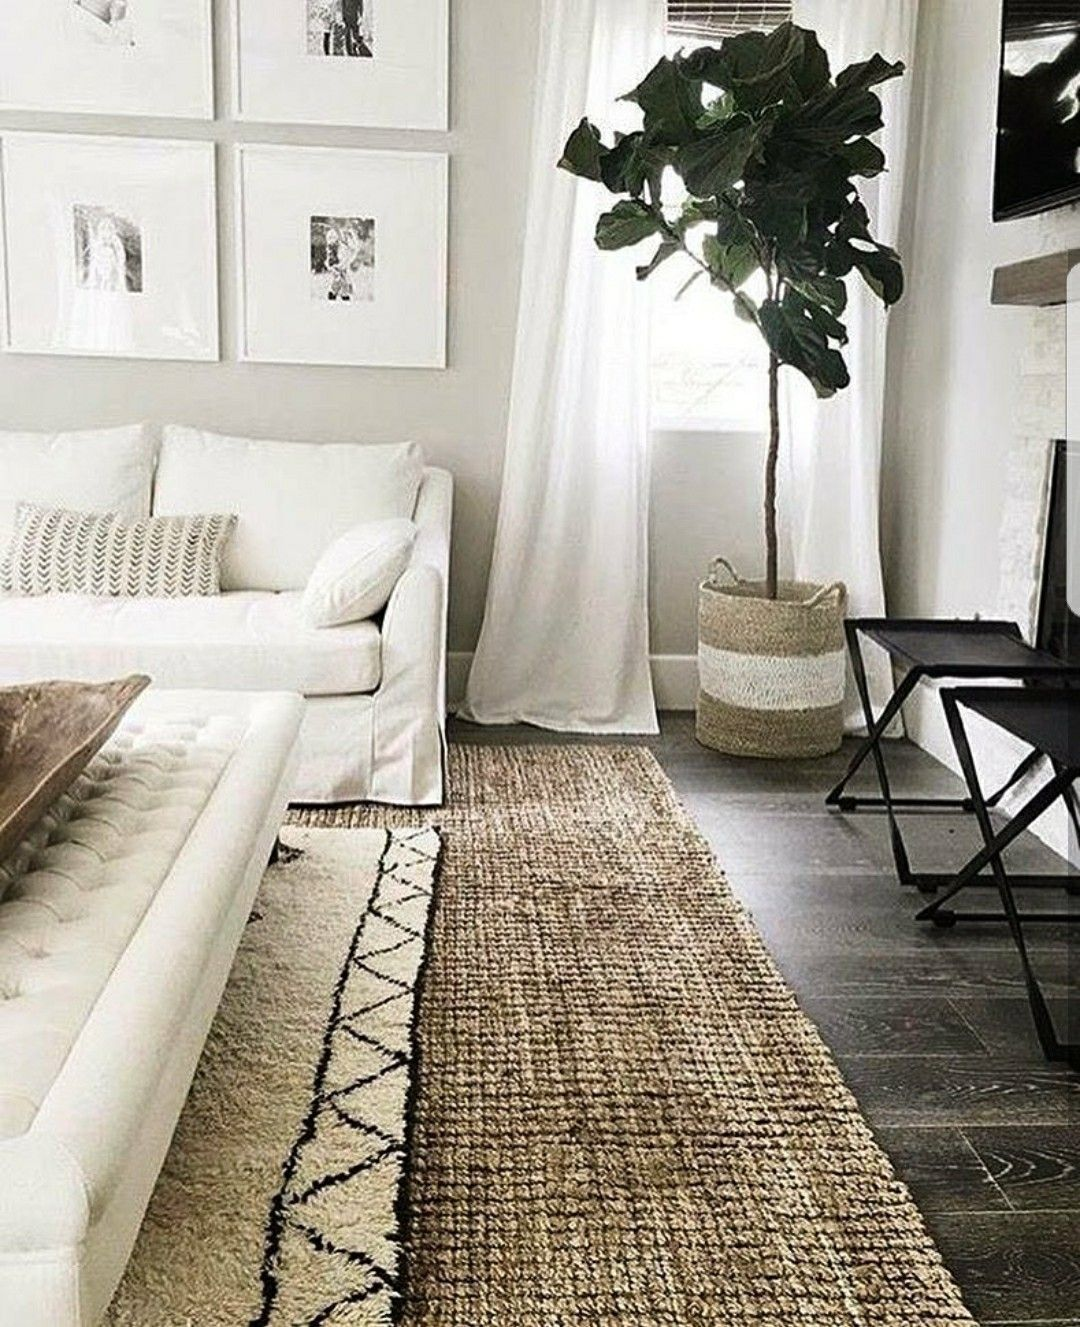 love the complimentary nude colors with the splash of green | Rug ...